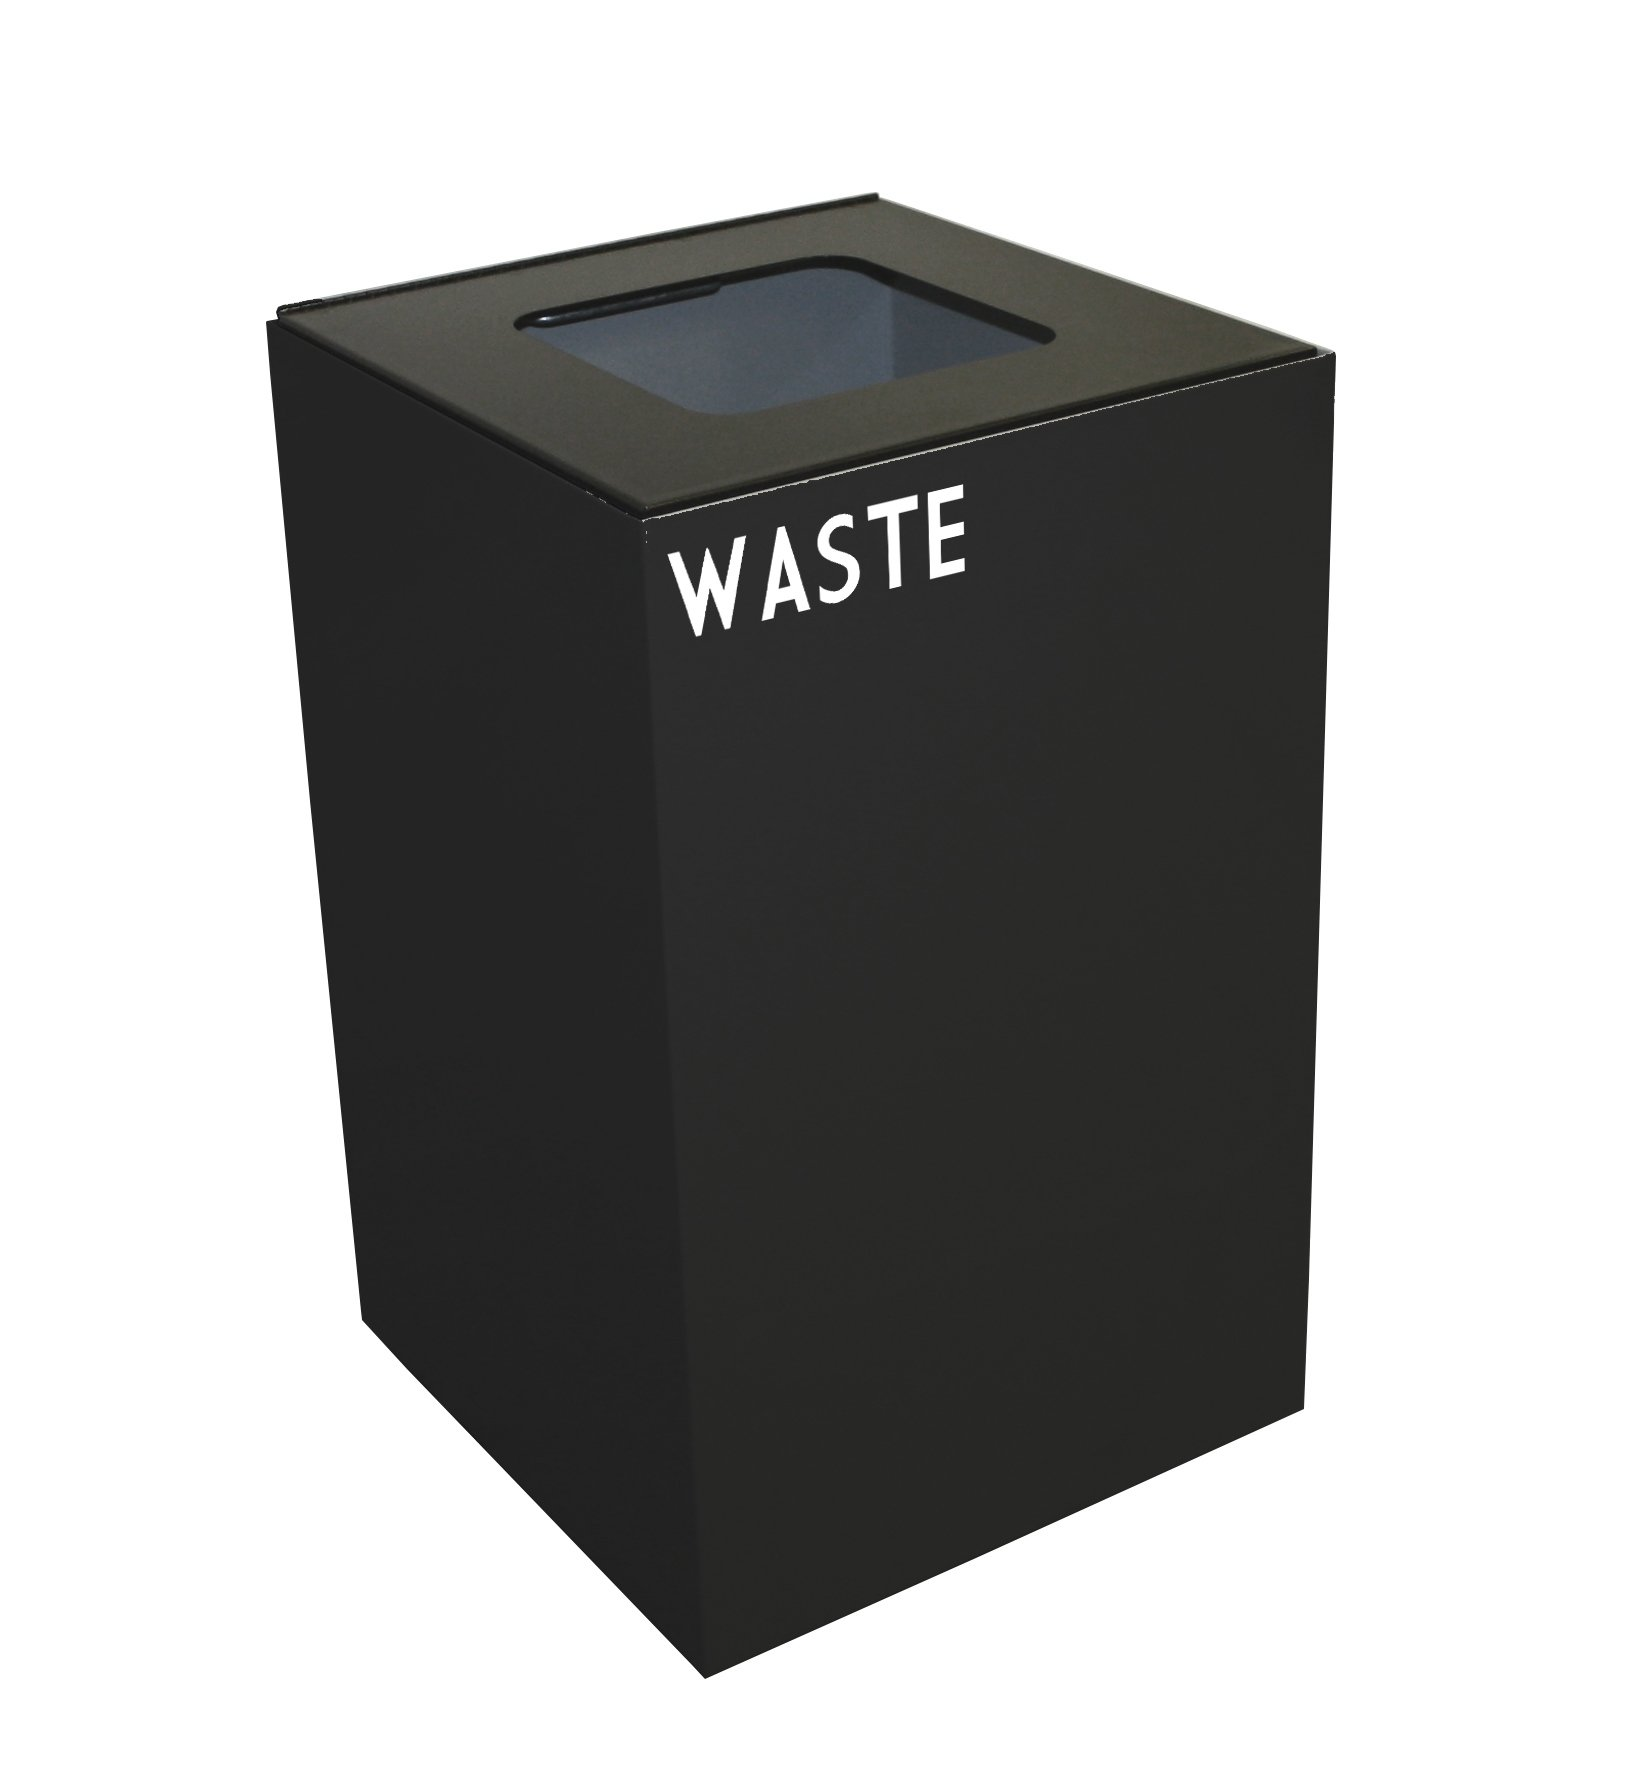 Witt Industries 24GC03-CB Steel 24-Gallon Geo Cube Recycling Container, Square Opening, Legend ''Waste'', Square, 15'' Width x 15'' Depth x 24'' Height, Charcoal